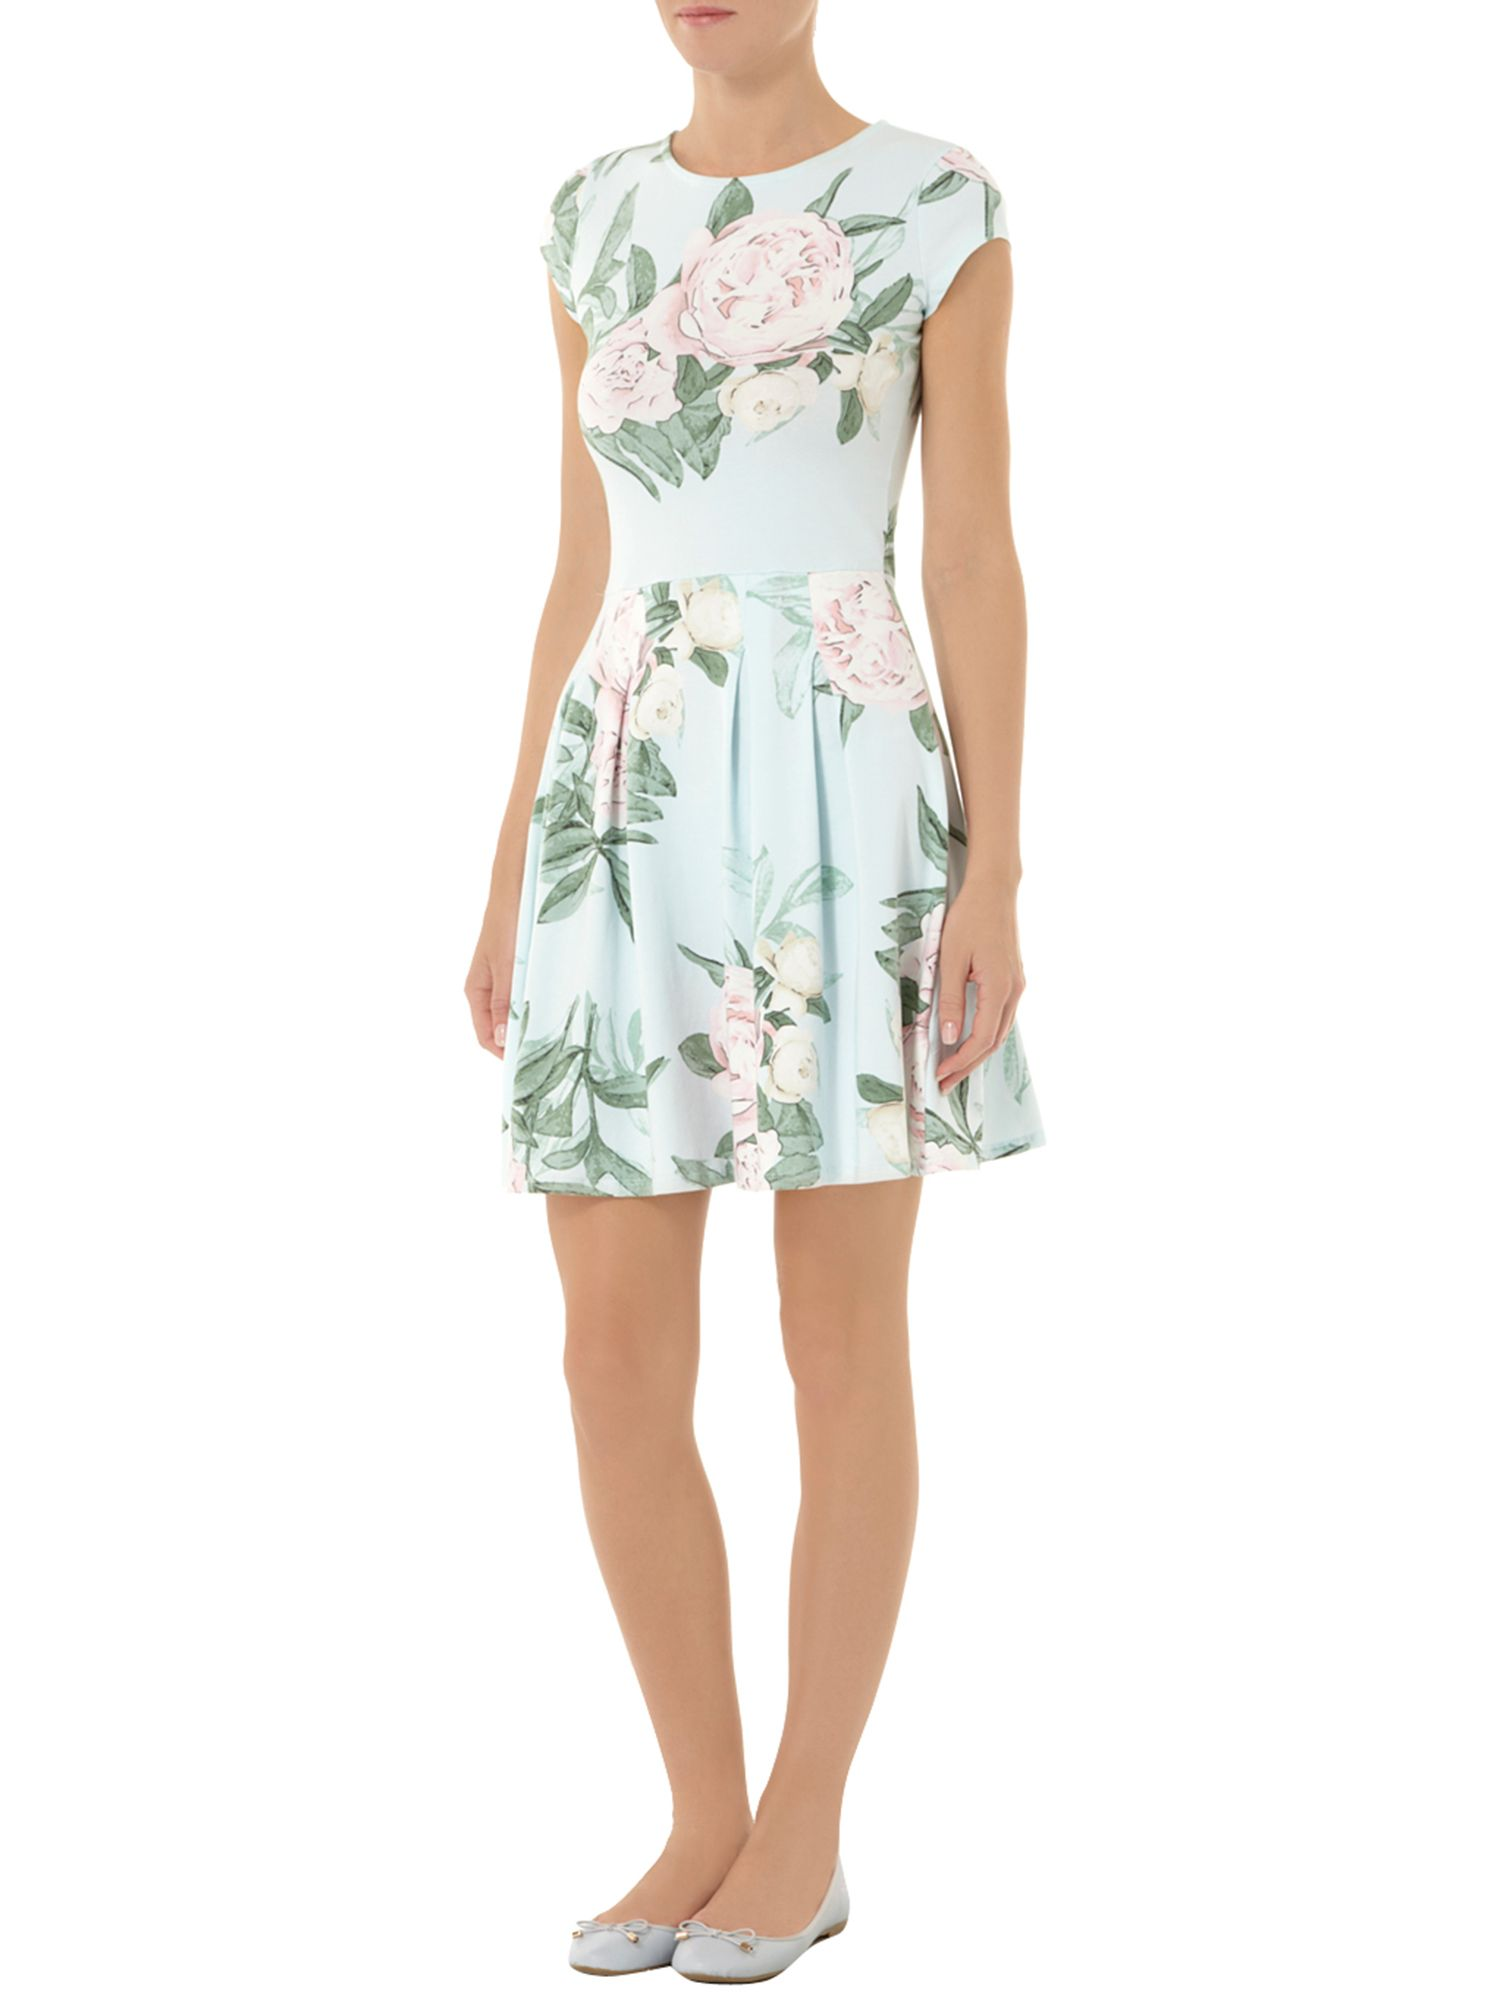 Floral Boxpleat Dress